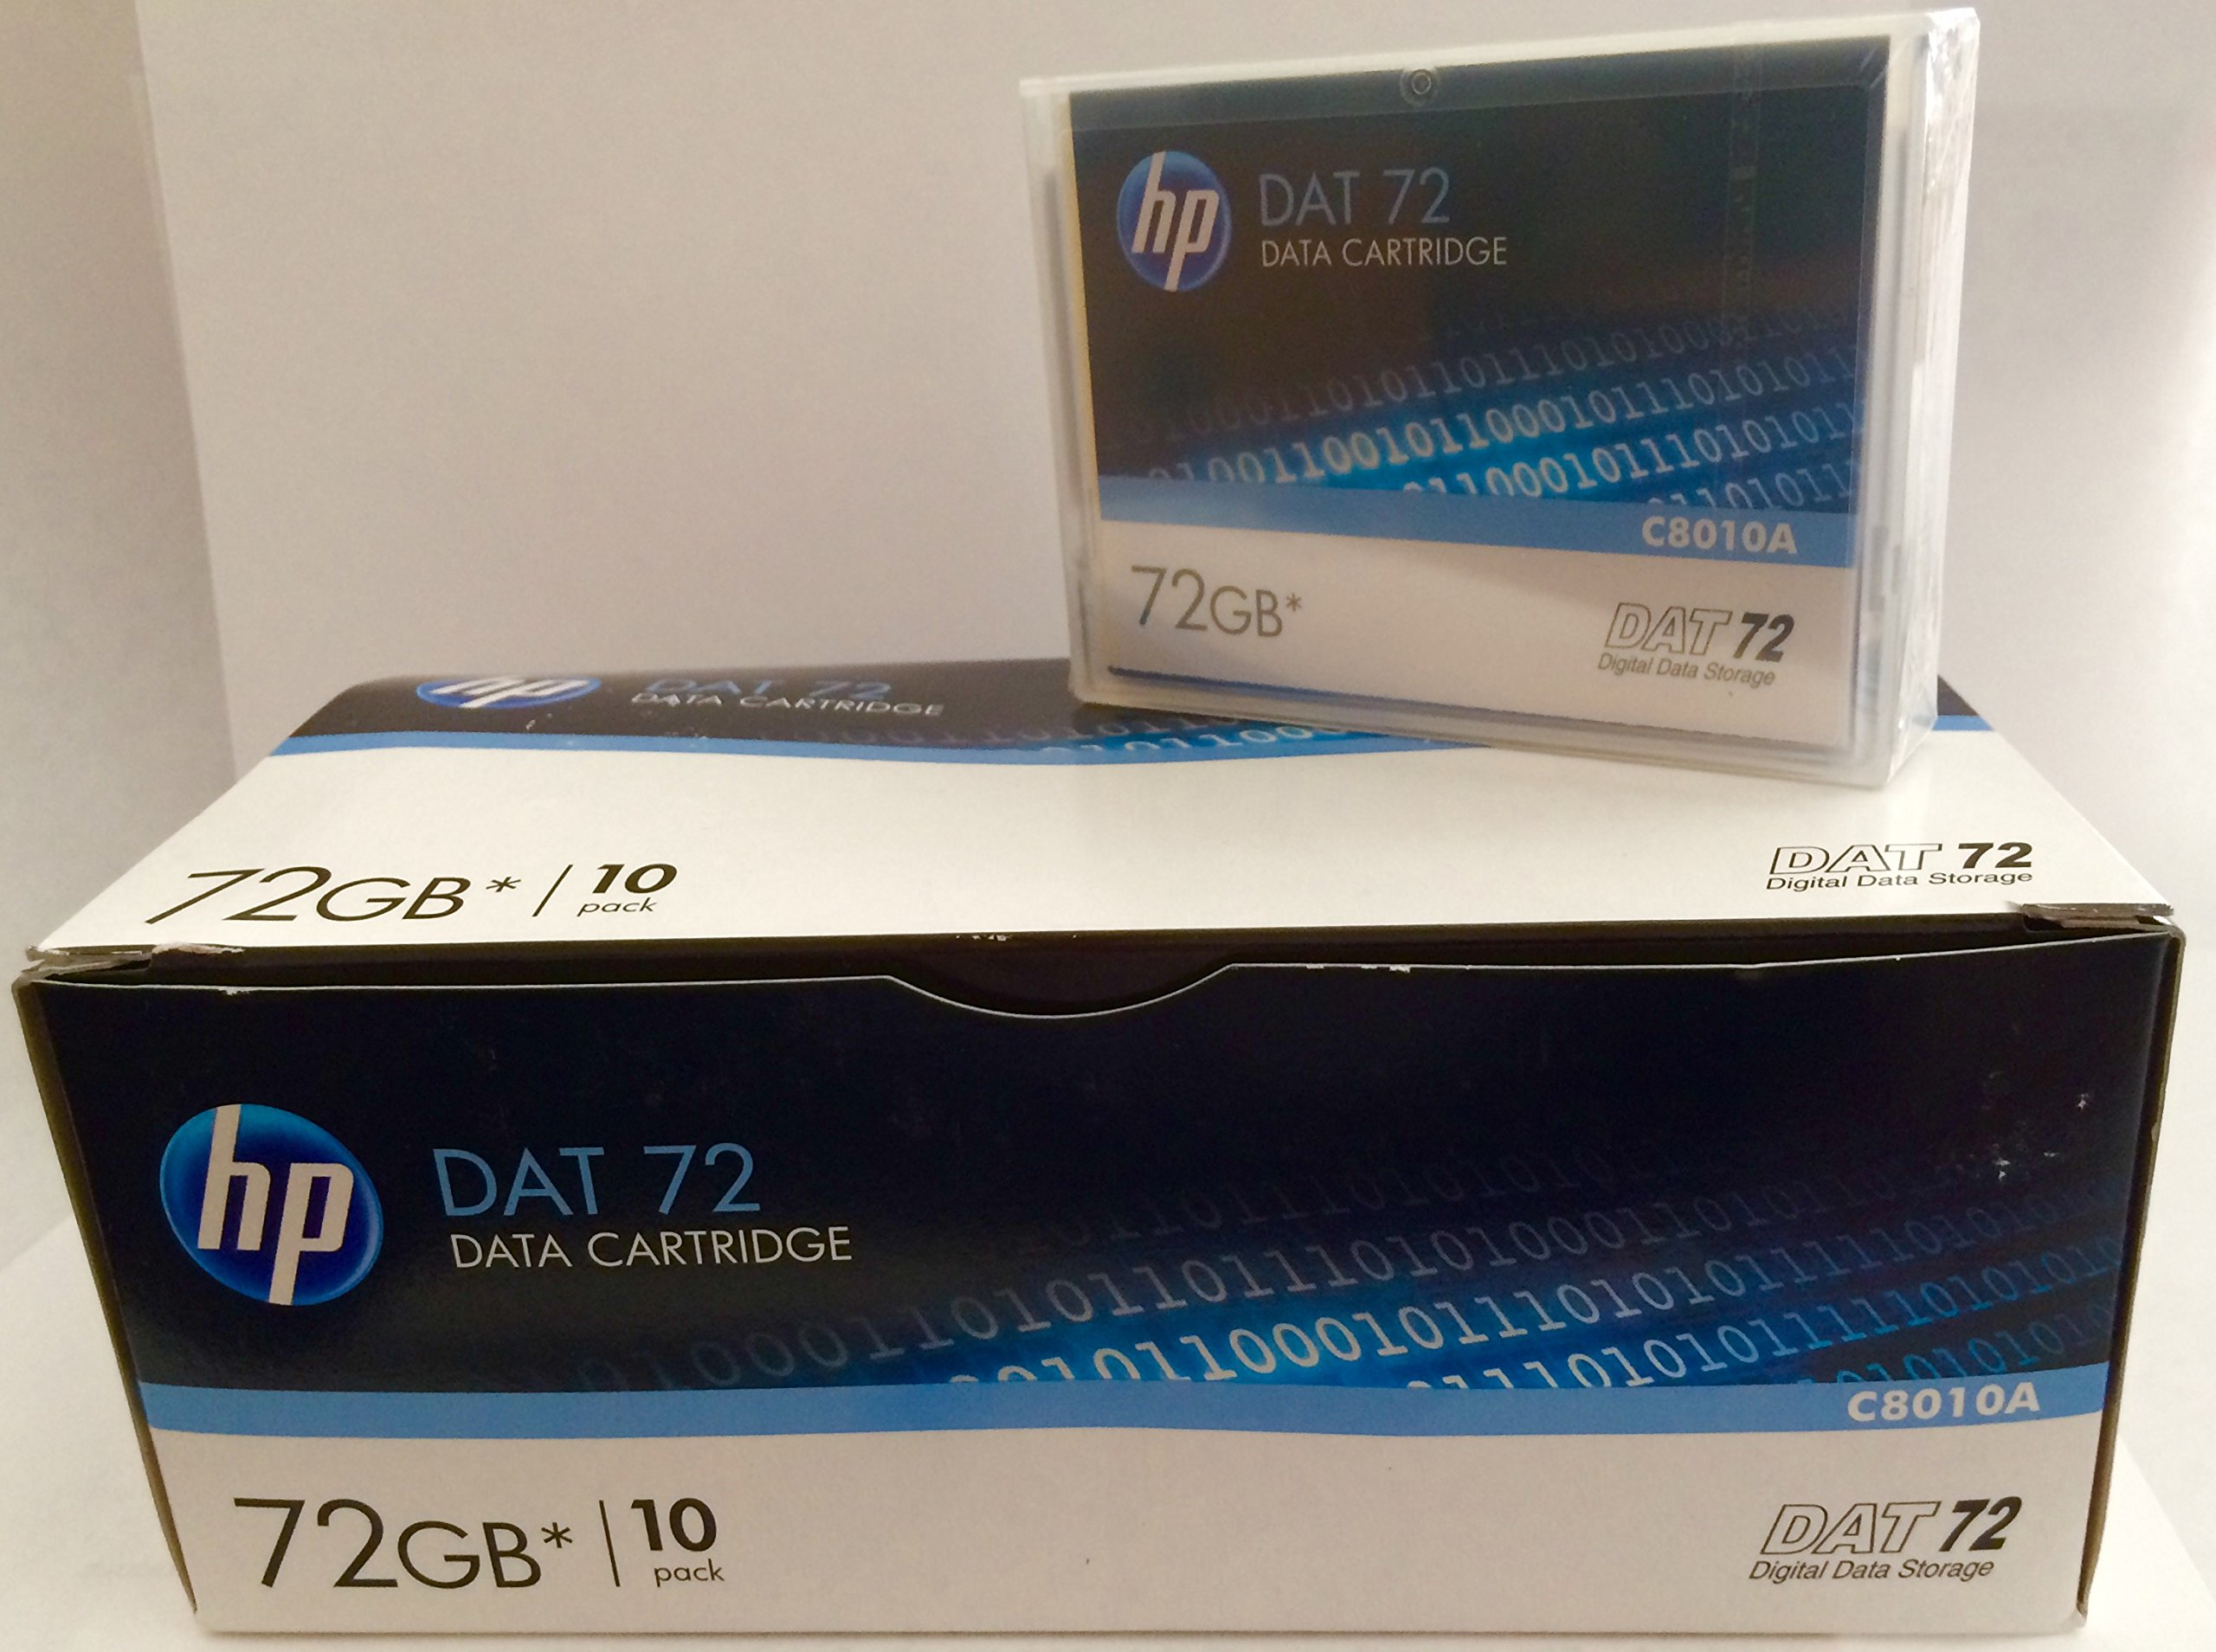 10 Pack HP C8010A DAT72 4/170 DDS5 Media 36/72GB(NEW) by hp